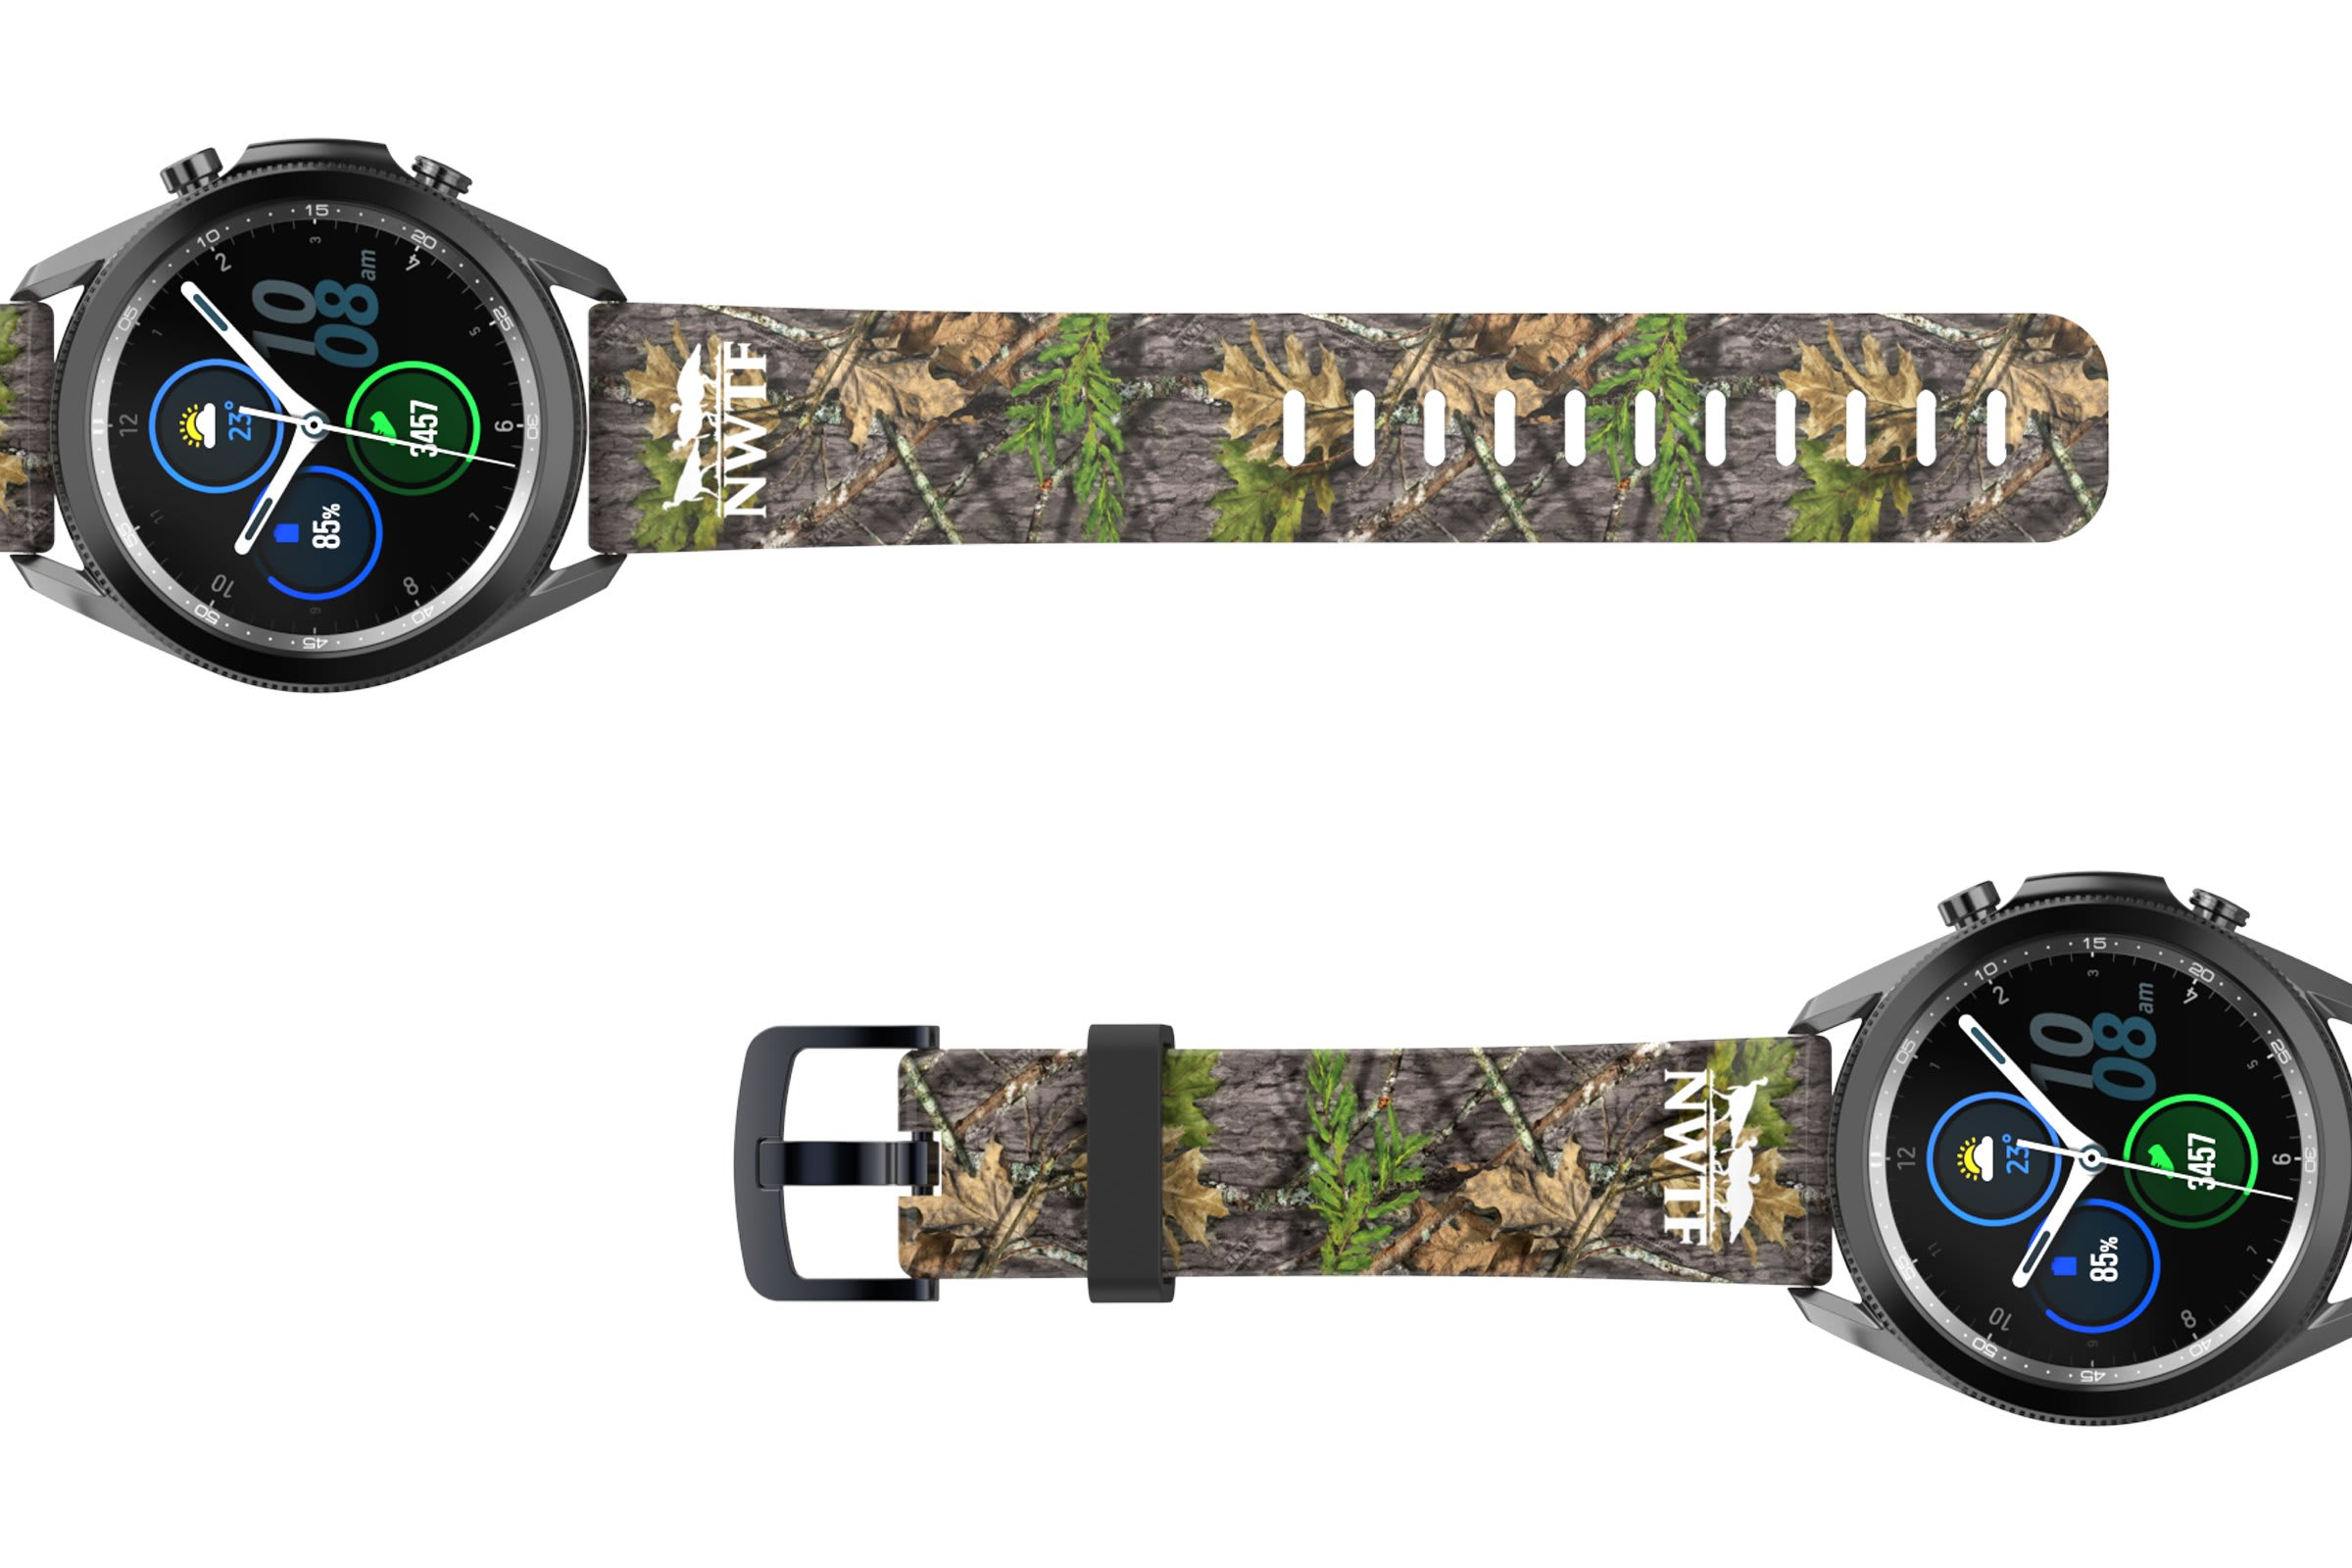 NWTF Mossy Oak Obsession Samsung 22mm watch band viewed top down